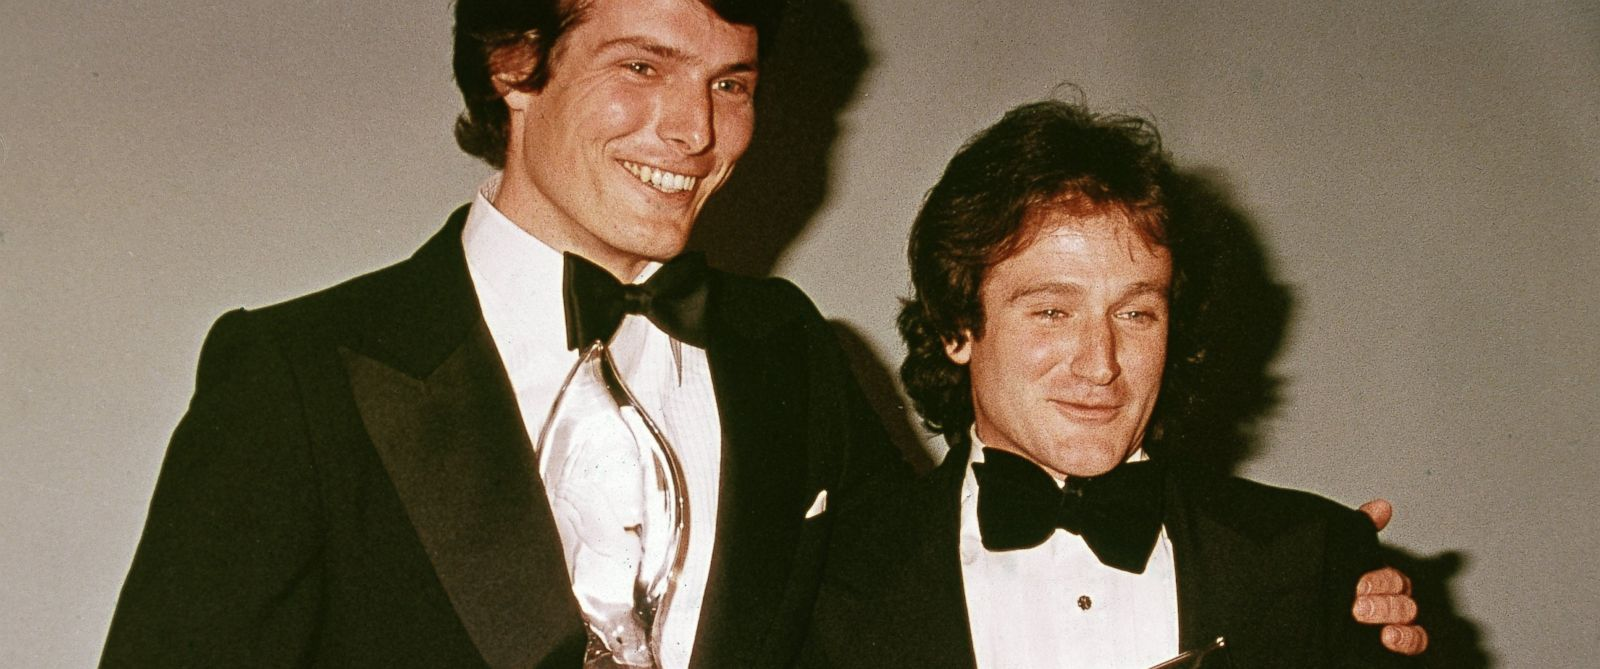 PHOTO: American actors Christopher Reeve (1952 - 2004) and Robin Williams pose backstage at the Peoples Choice Awards, in this March 1979, file photo.